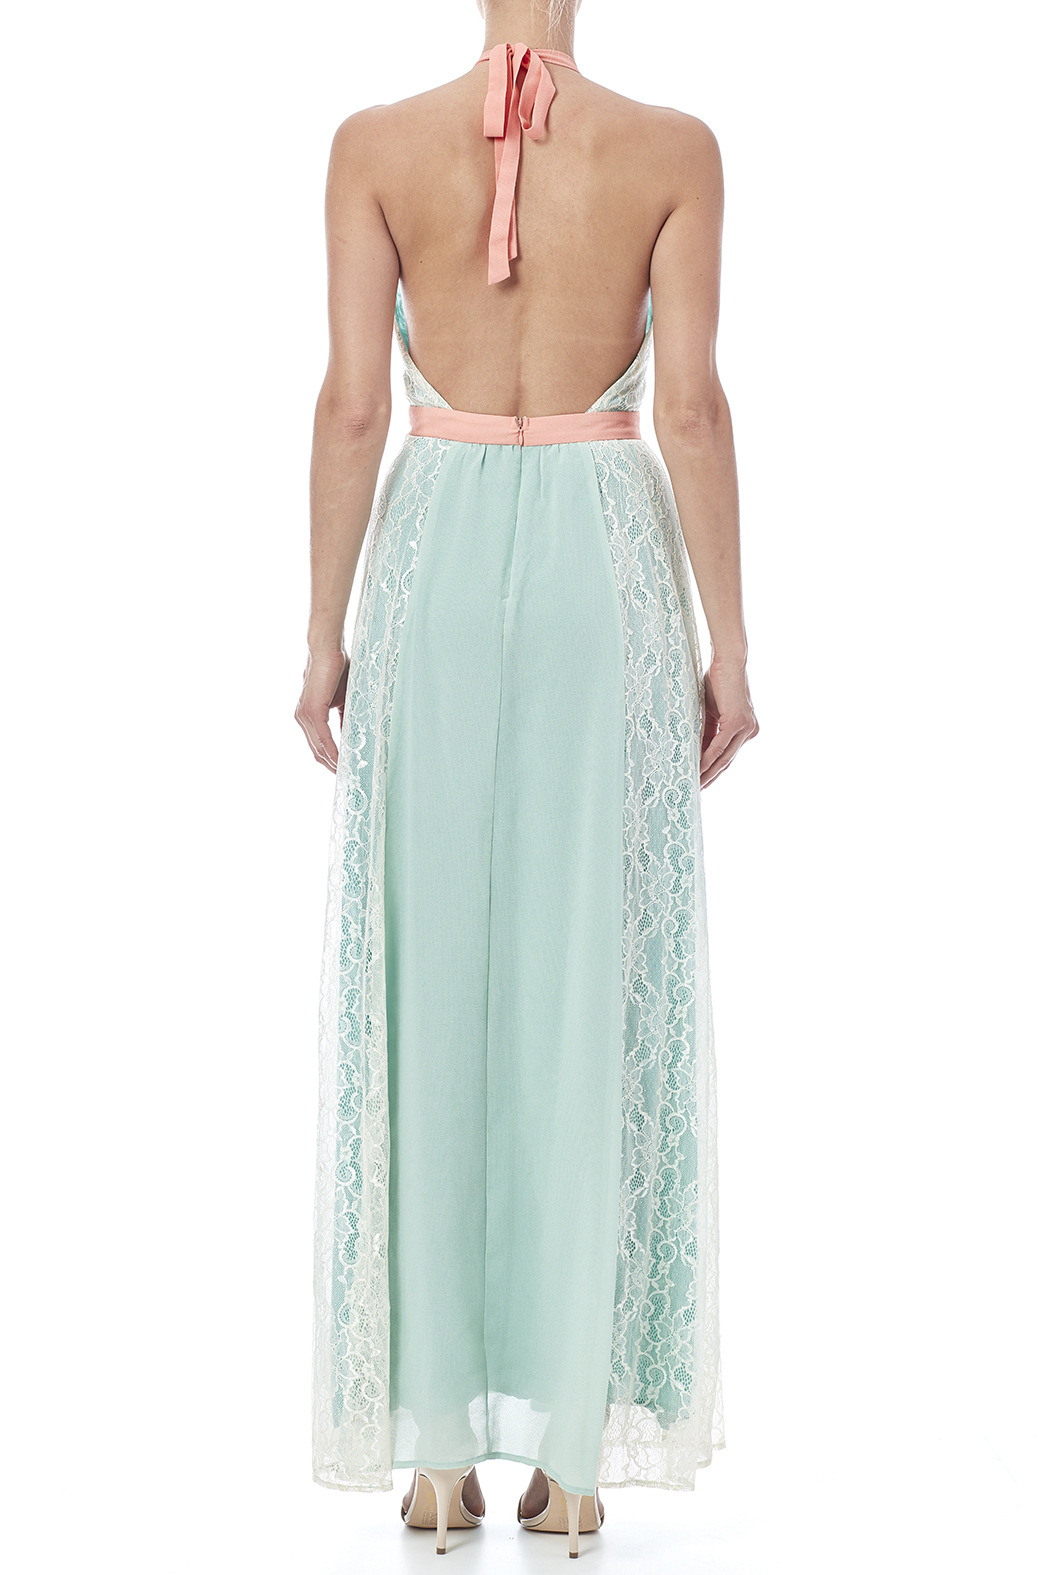 Champagne & Strawberry Mint Maxi Dress - Back Cropped Image